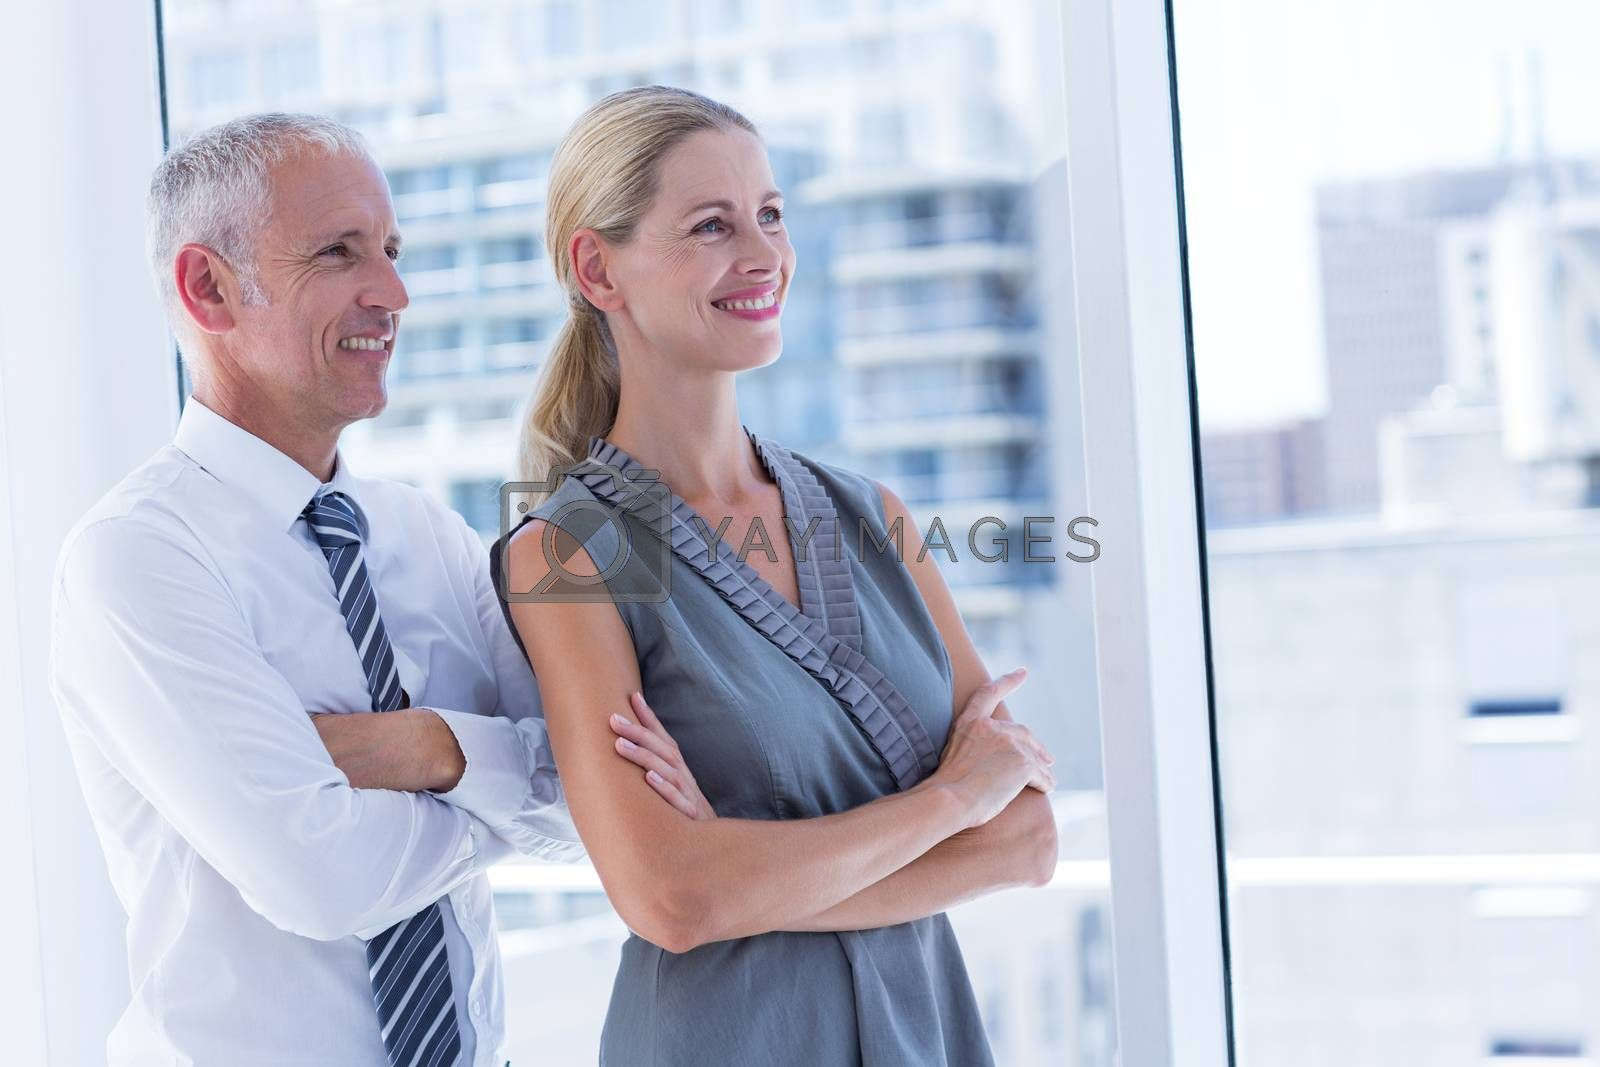 Royalty free image of Two smiling business people looking away by Wavebreakmedia